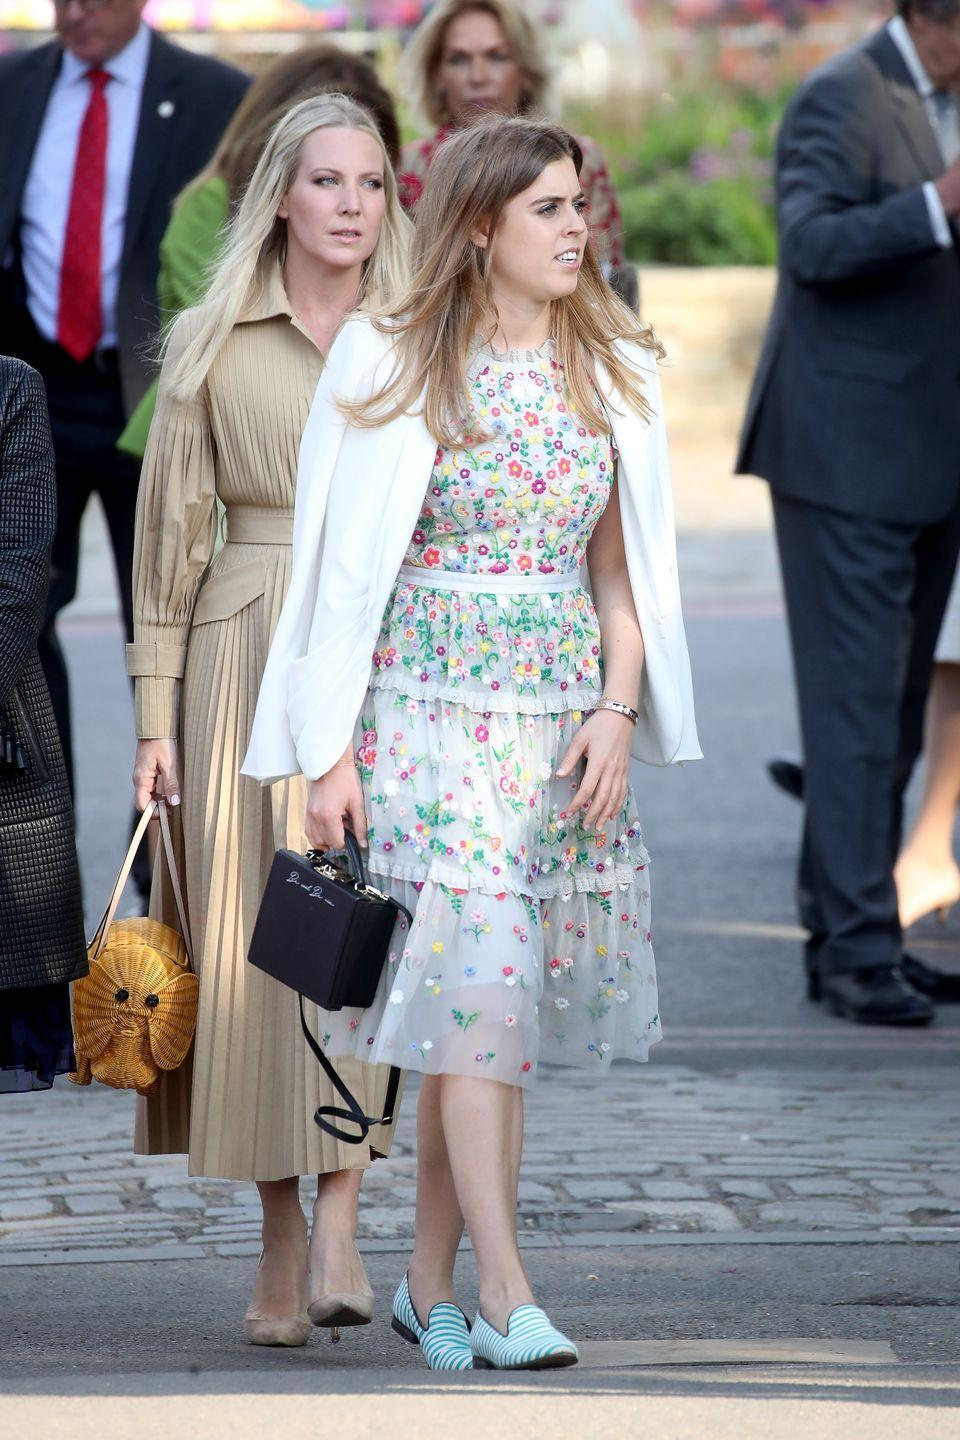 "<p>Looking like springtime herself in an adorable flowered dress for the Chelsea Flower Show in 2018, Bea carried a teeny structured handbag. What you might not have noticed was the subtle message, ""<a href=""https://www.goodhousekeeping.com/beauty/fashion/a20871358/princess-beatrice-chelsea-flower-show/"" rel=""nofollow noopener"" target=""_blank"" data-ylk=""slk:Be cool Be nice"" was embellished on the side of the bag"" class=""link rapid-noclick-resp"">Be cool Be nice"" was embellished on the side of the bag</a>, notes GoodHouskeeping.com. It's a slogan associated with <a href=""http://www.becoolbenice.org/"" rel=""nofollow noopener"" target=""_blank"" data-ylk=""slk:an anti-bullying campaign"" class=""link rapid-noclick-resp"">an anti-bullying campaign</a>. Or perhaps a nod to the <a href=""https://www.goodhousekeeping.com/life/a22626563/princess-eugenie-beatrice-kate-middleton-hat-wedding/"" rel=""nofollow noopener"" target=""_blank"" data-ylk=""slk:bullying the princess received"" class=""link rapid-noclick-resp"">bullying the princess received</a> after daring to wear her <a href=""https://www.goodhousekeeping.com/beauty/fashion/g22700305/princess-eugenie-and-princess-beatrice-best-hats/?slide=20"" rel=""nofollow noopener"" target=""_blank"" data-ylk=""slk:fascinating ""octopus"" fascinator"" class=""link rapid-noclick-resp"">fascinating ""octopus"" fascinator</a> to William and Kate's wedding?</p>"